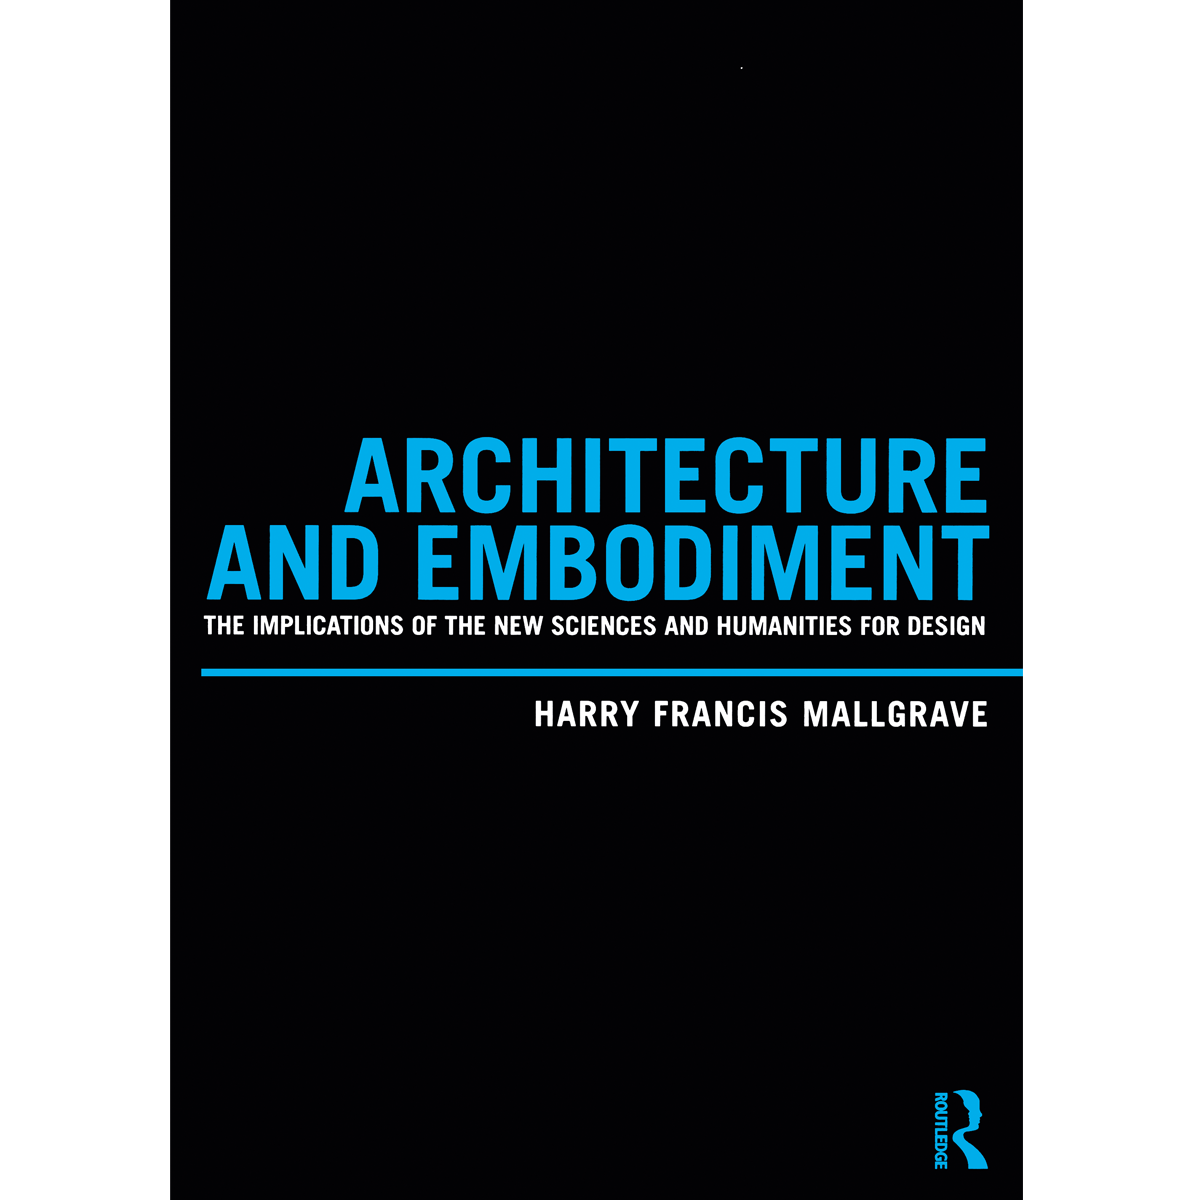 Architecture and Embodiment